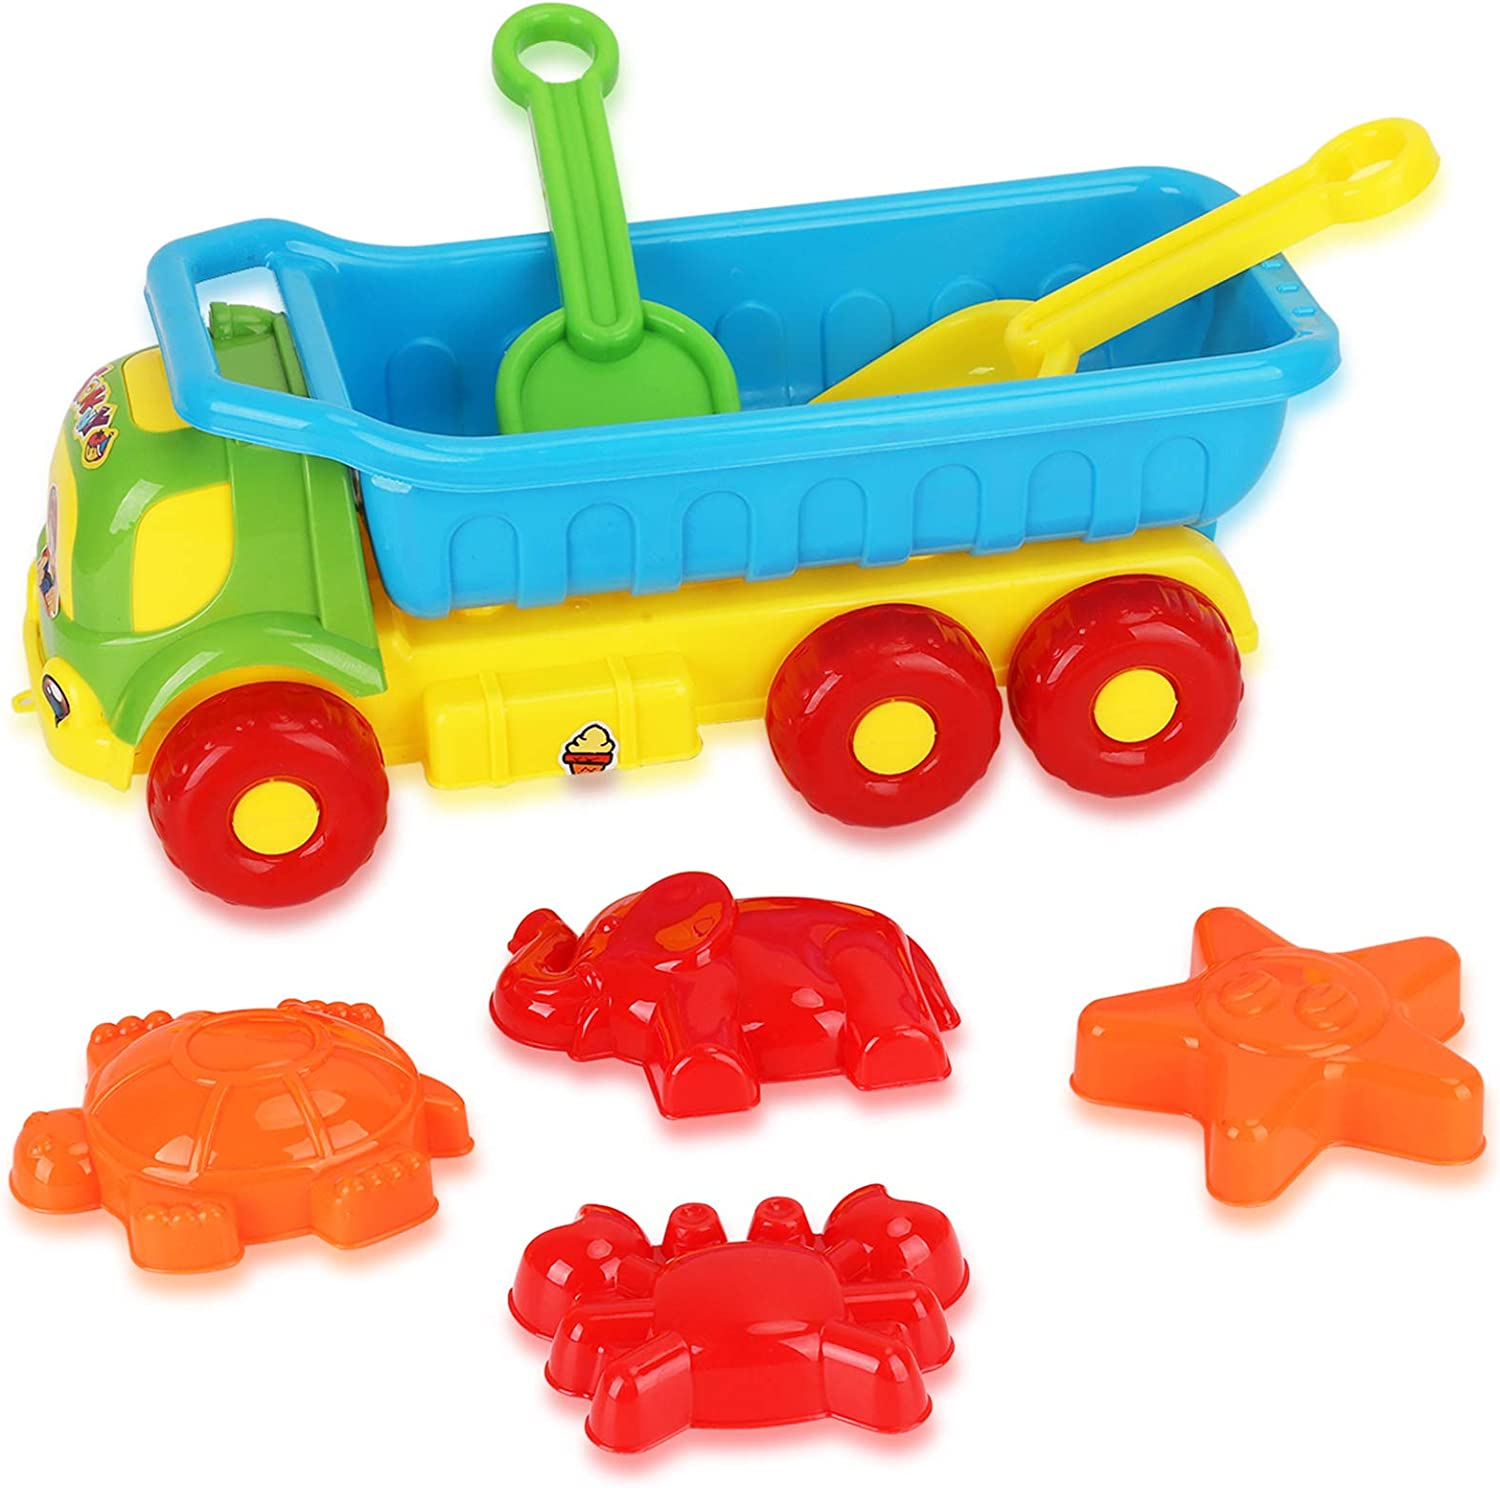 BPA Free Plastic Boost Children/'s Creativity Safe Summer Gift for Boys /& Girls 6 Pieces Set Beach Toys for Kids 3-10 Sand Castle Building Kit Dump Truck Toy for Toddlers Role Play